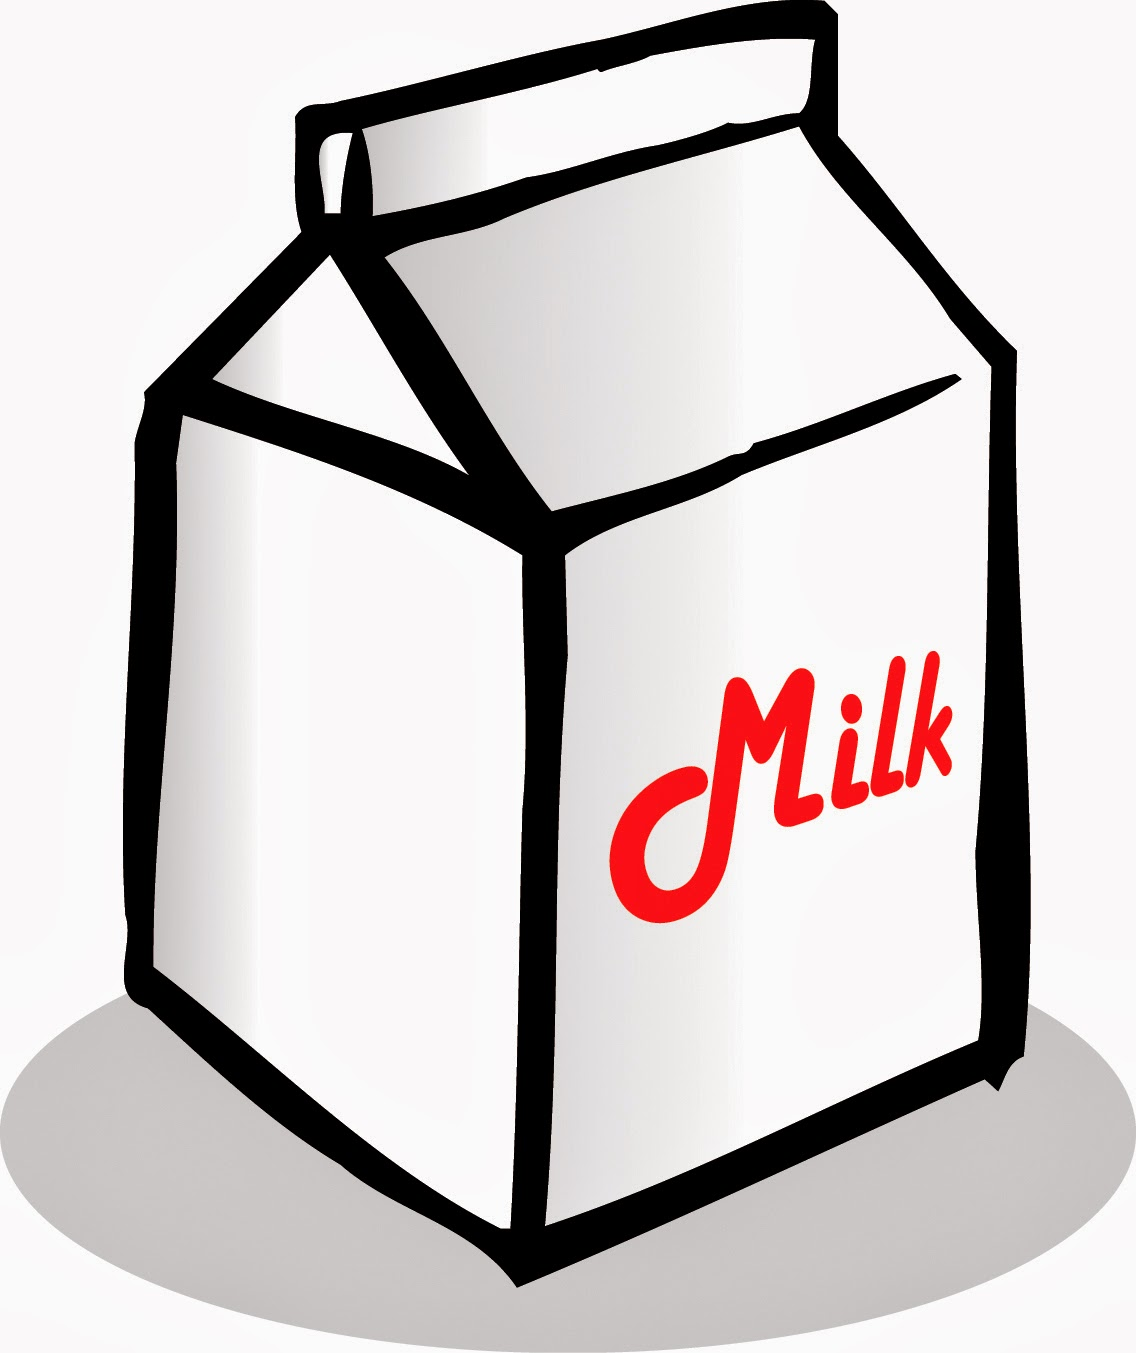 Rinsing milk clipart png.